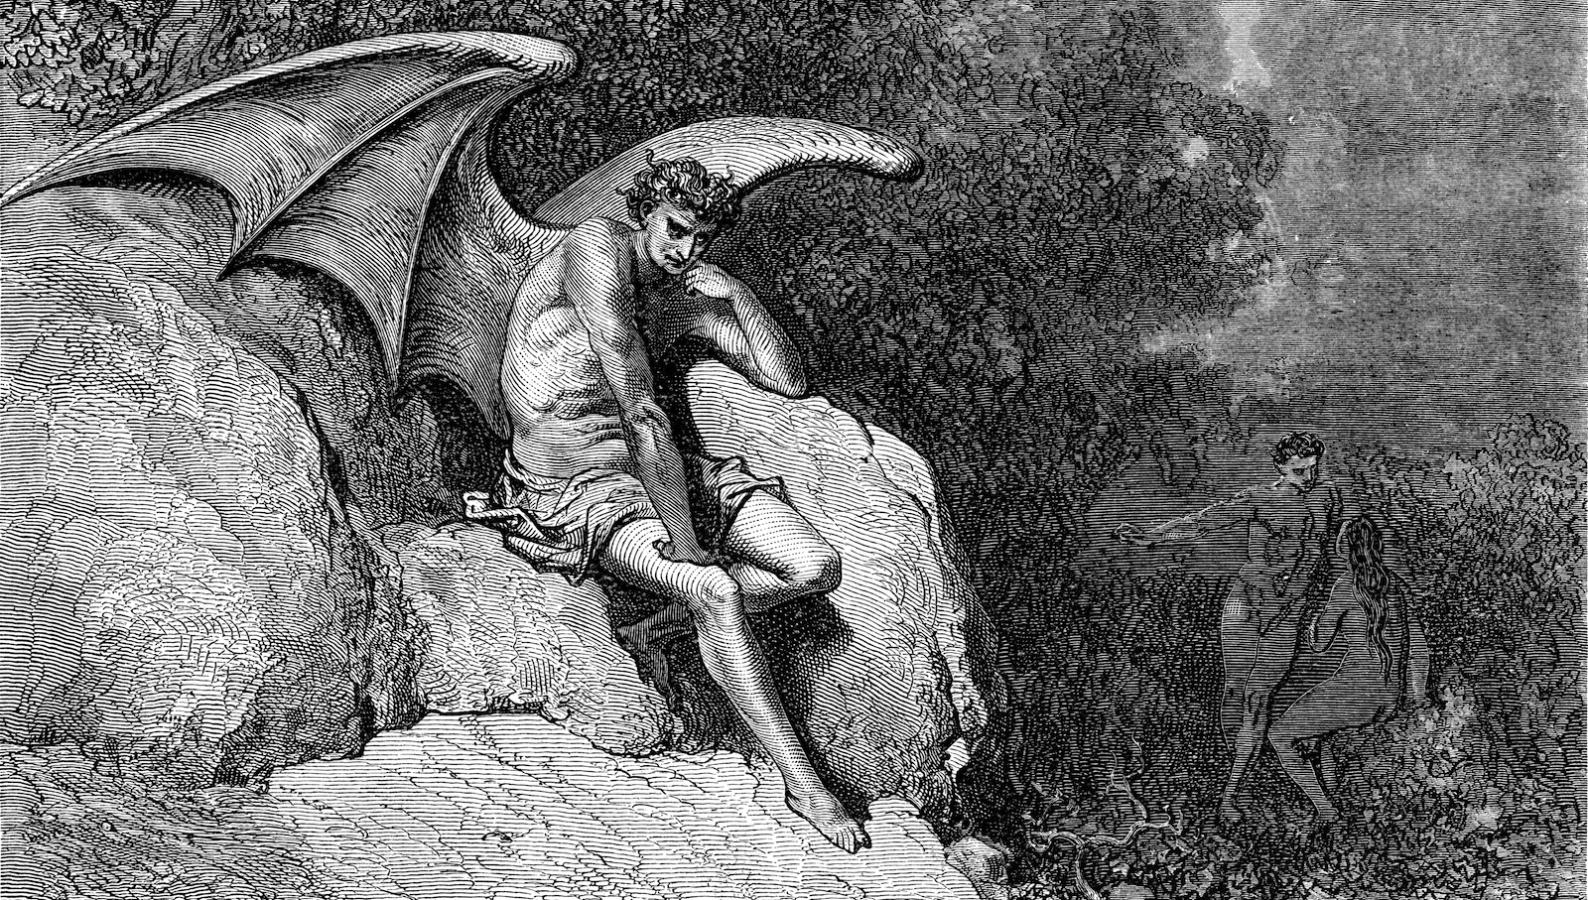 Engraving by Gustave Dore. From Milton's Paradise Lost by Robert Vaughan, D.D. Chicago and New York 1885